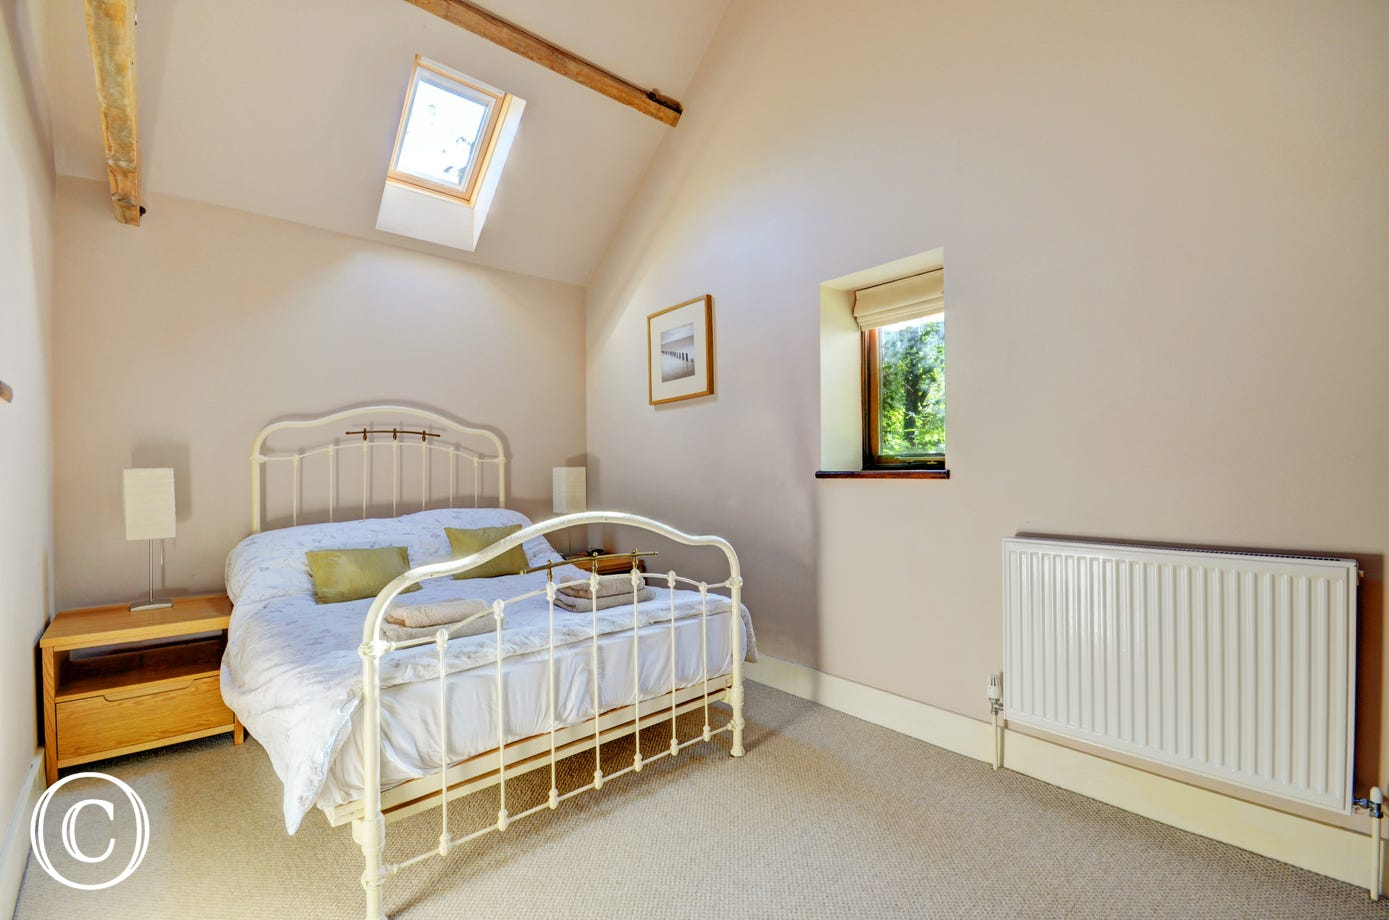 Bedroom three has a double bed with an attractive wrought iron bedstead